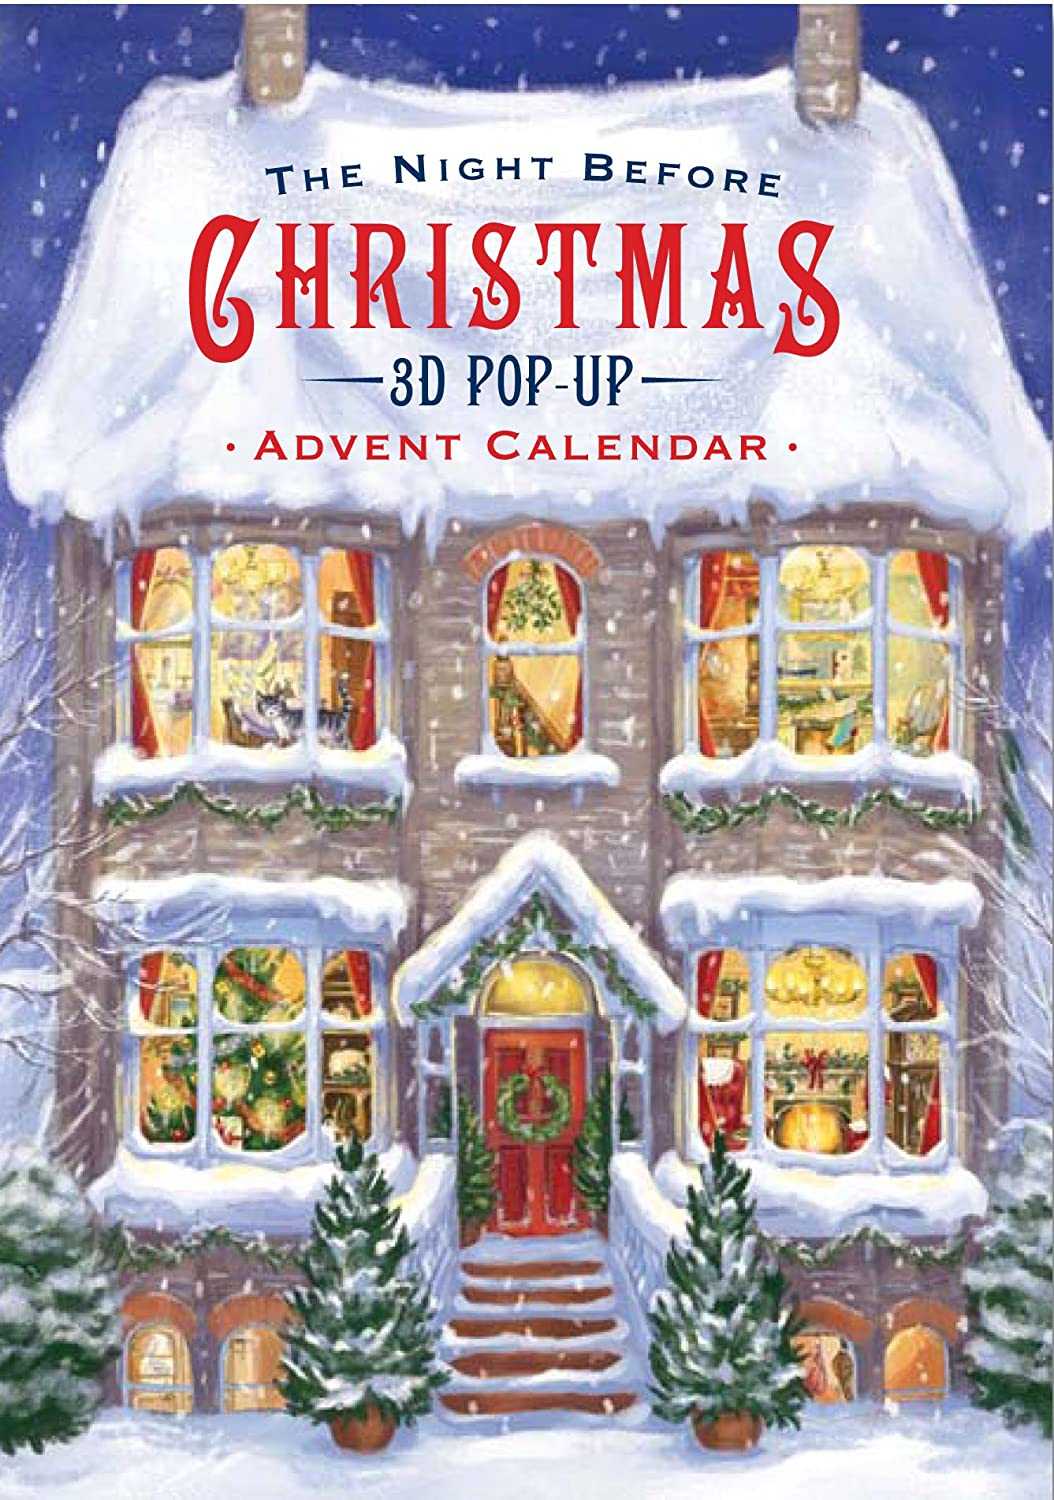 Christmas 3-D Advent Calendar - The Night Before Xmas - 24 Hidden Doors and Surprises For The Countdown To Christmas Babalu